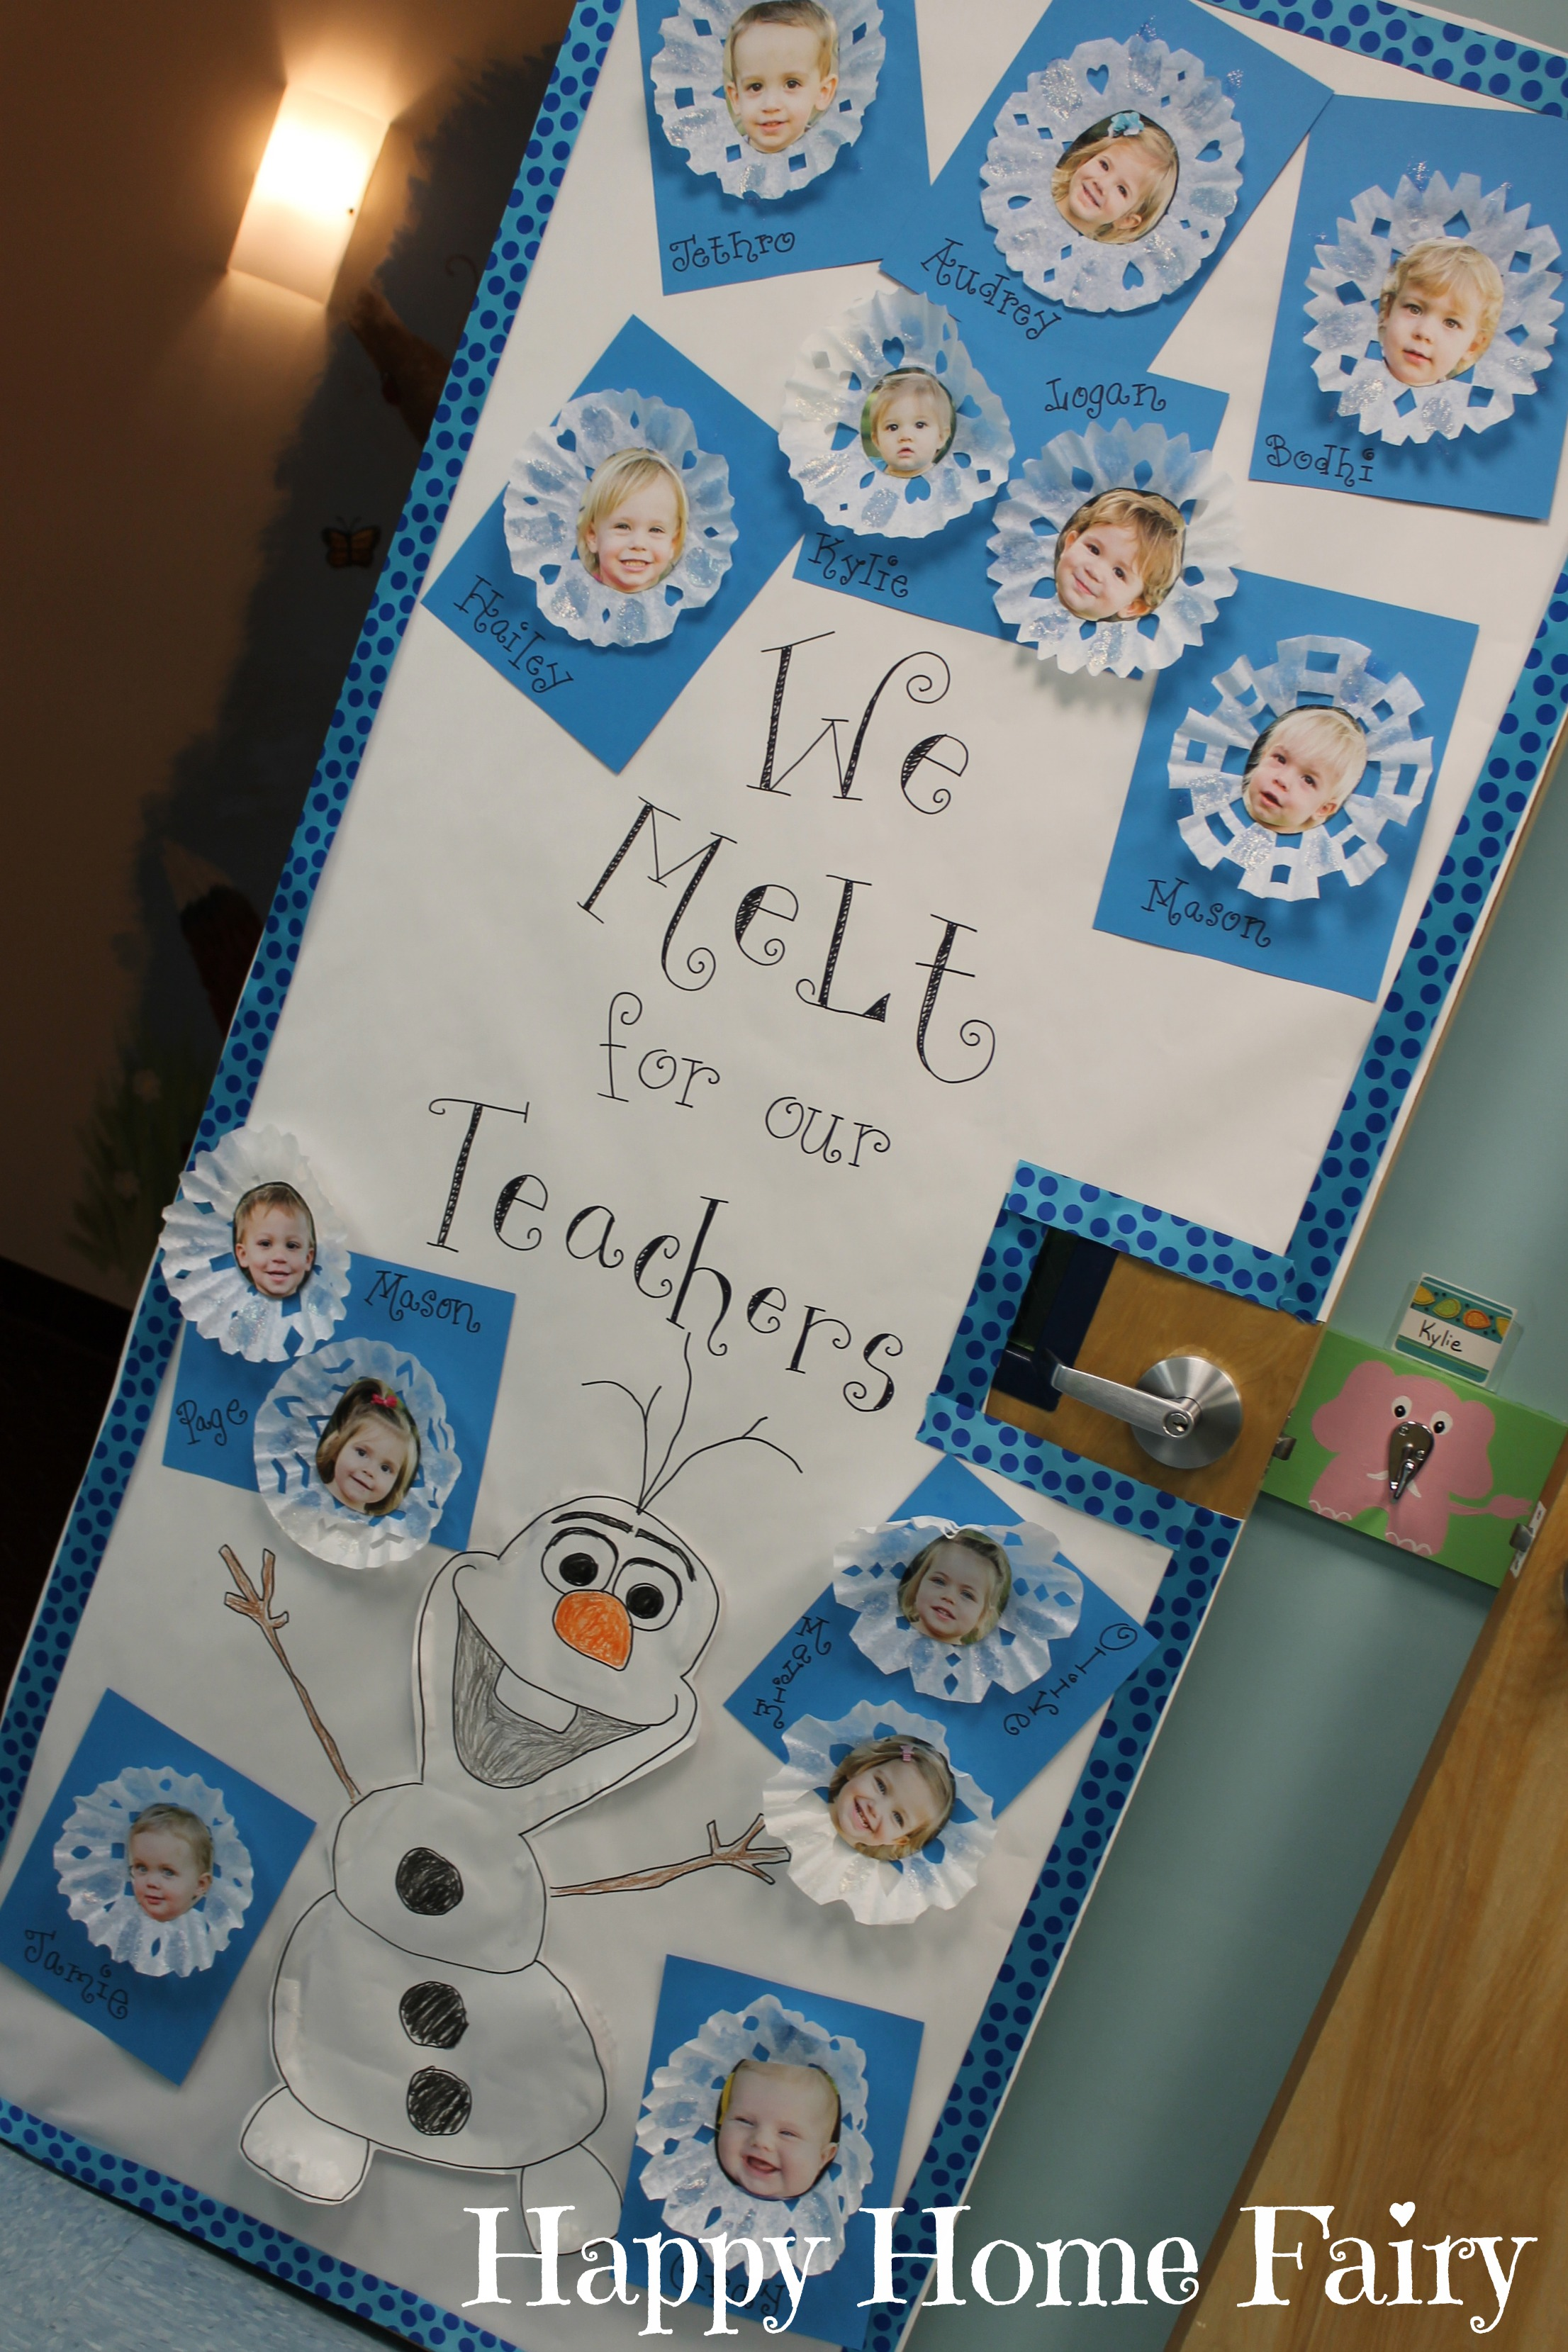 teacher door 5.jpg & Adorable Teacher Appreciation Door Idea - Happy Home Fairy